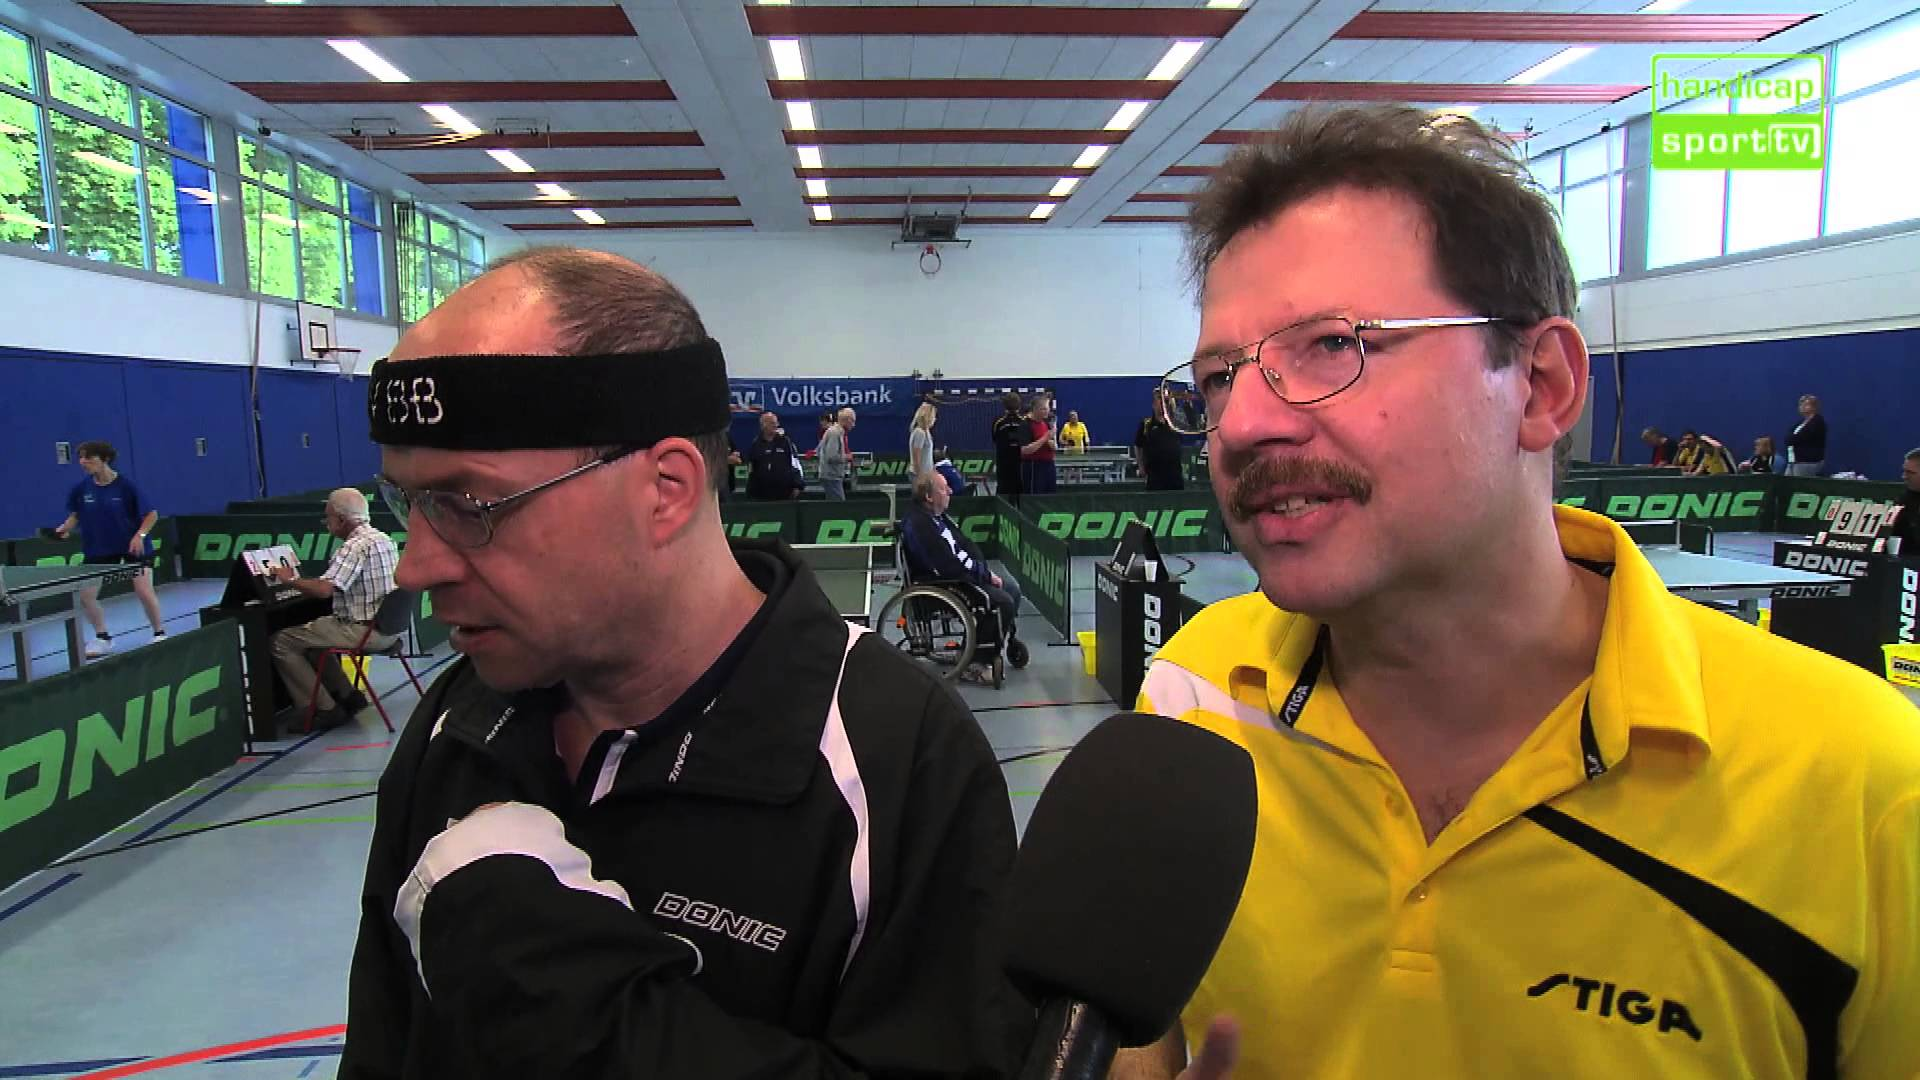 interview-mit-tischtennis-duo-no